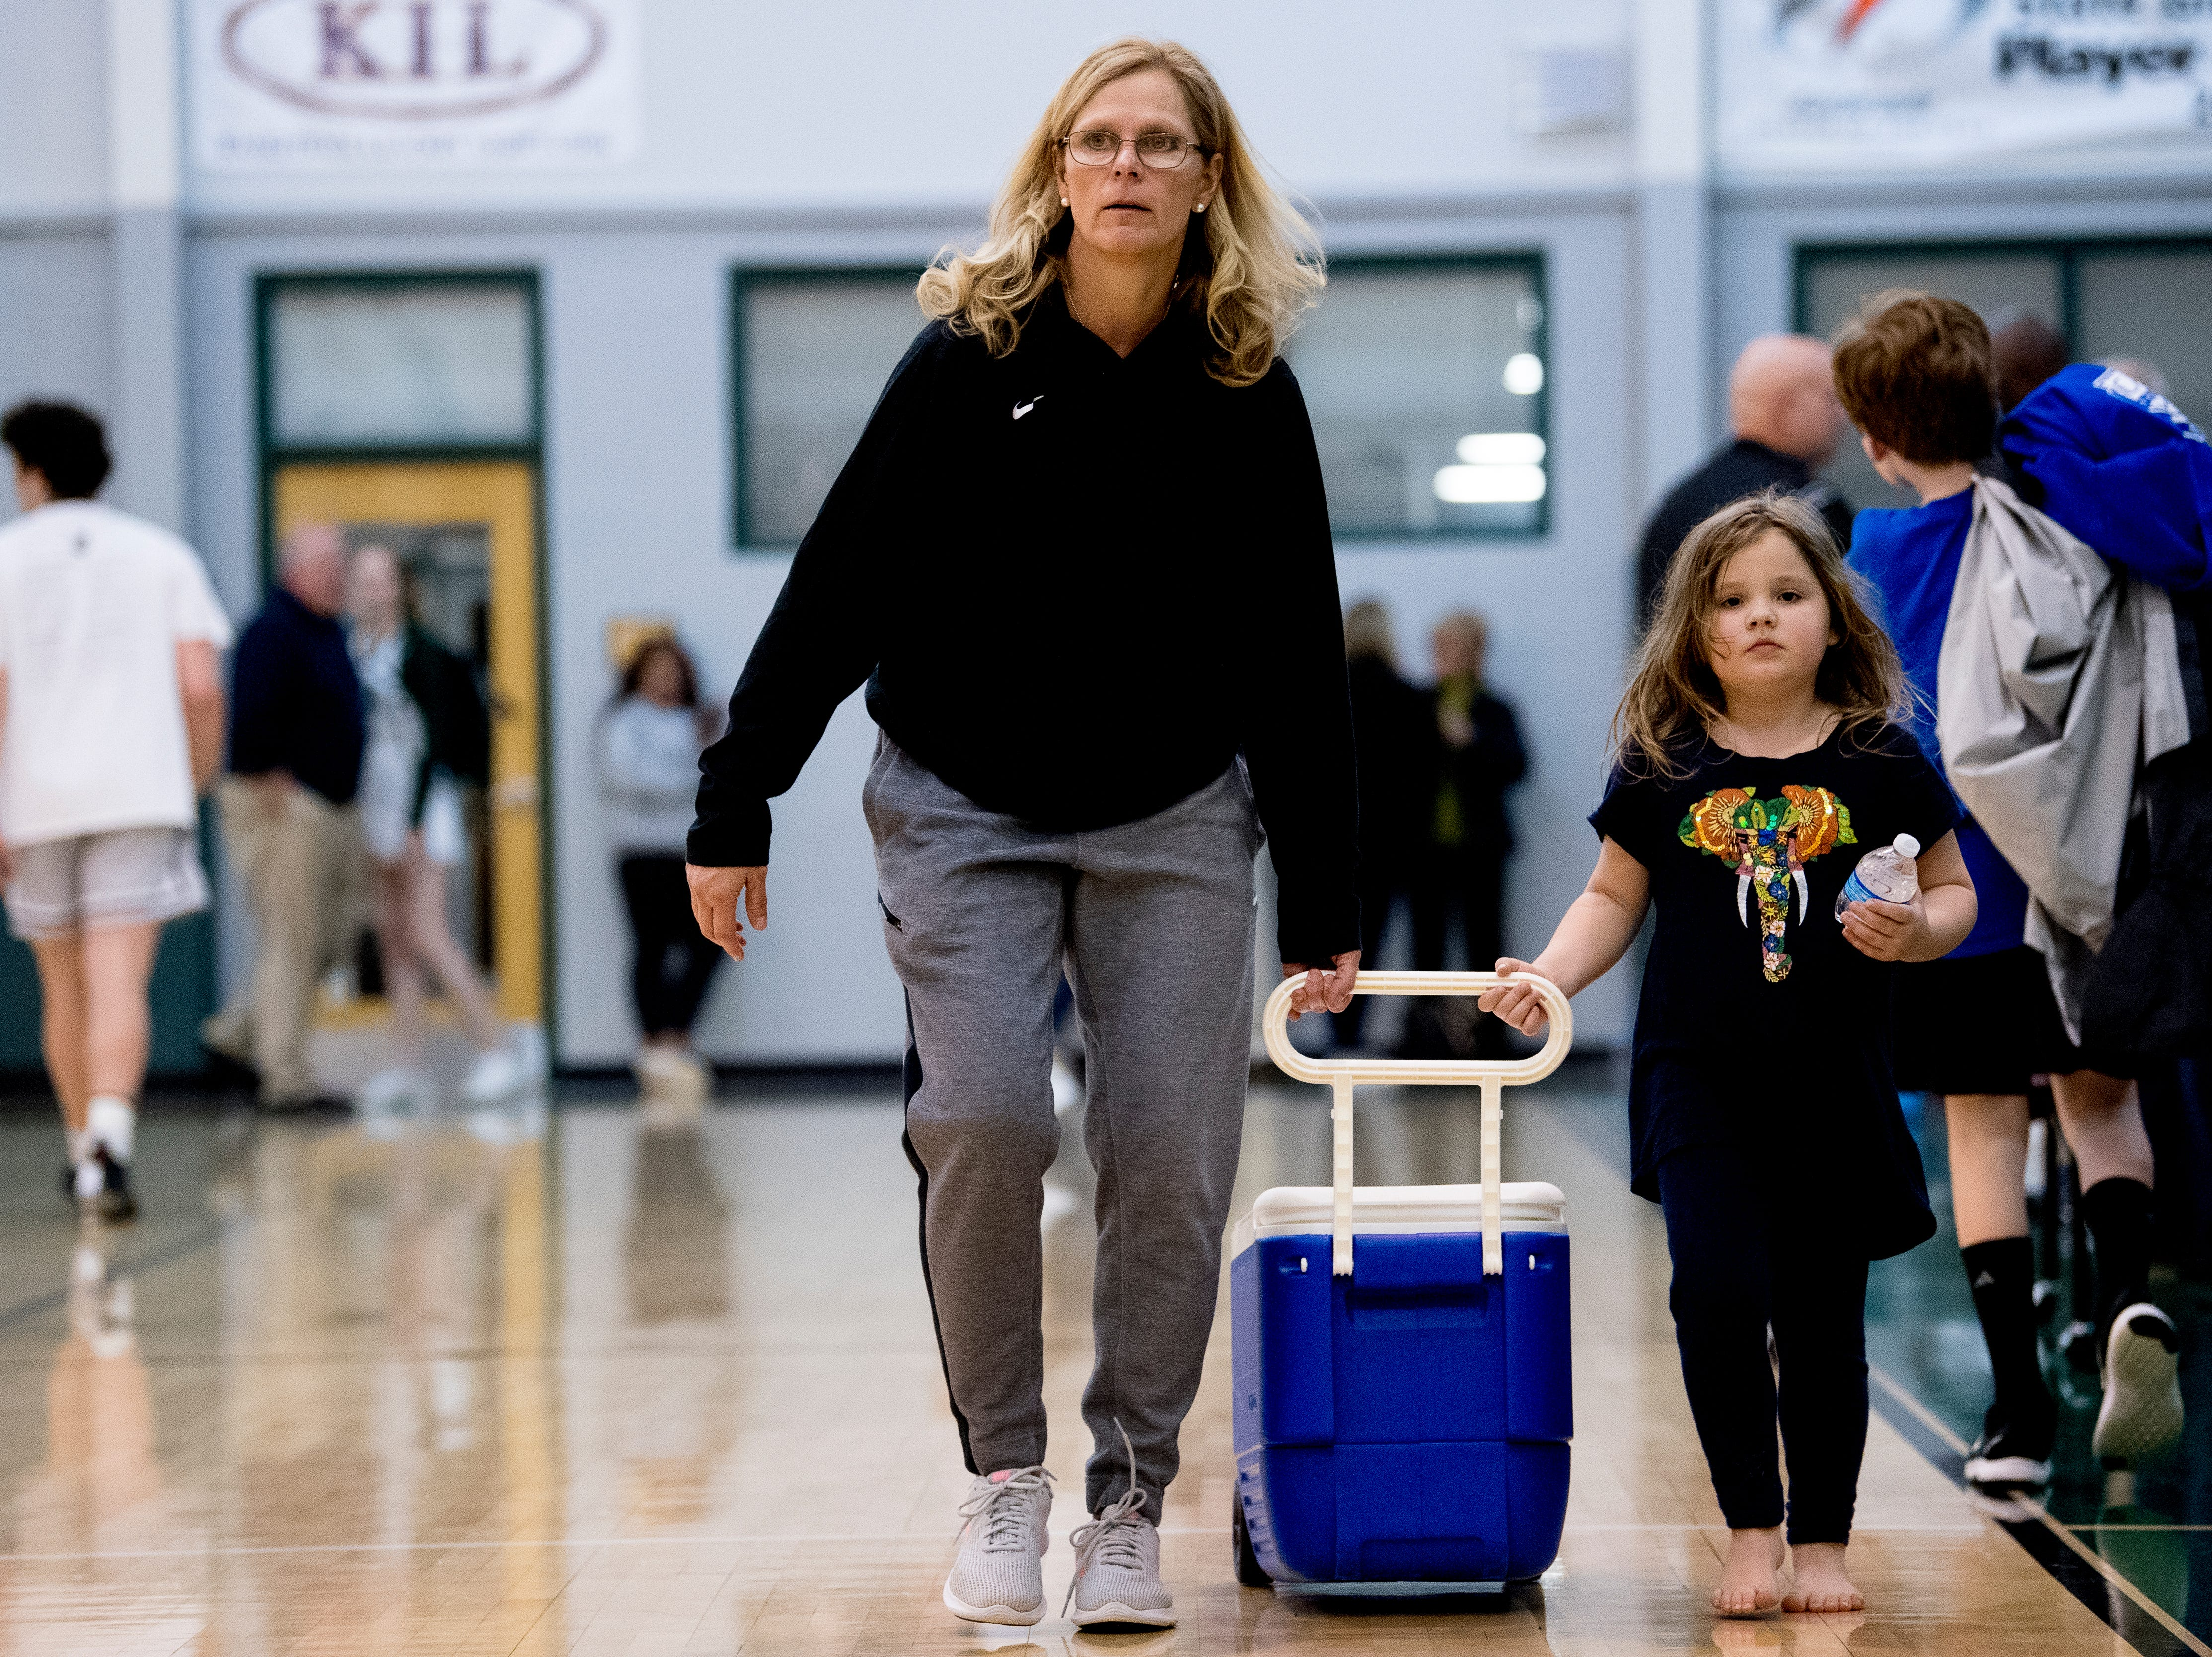 Webb girls head coach Shelley Collier gets some help pulling a cooler during a semifinal game tournament at Webb School of Knoxville in Knoxville, Tennessee on Friday, February 15, 2019.